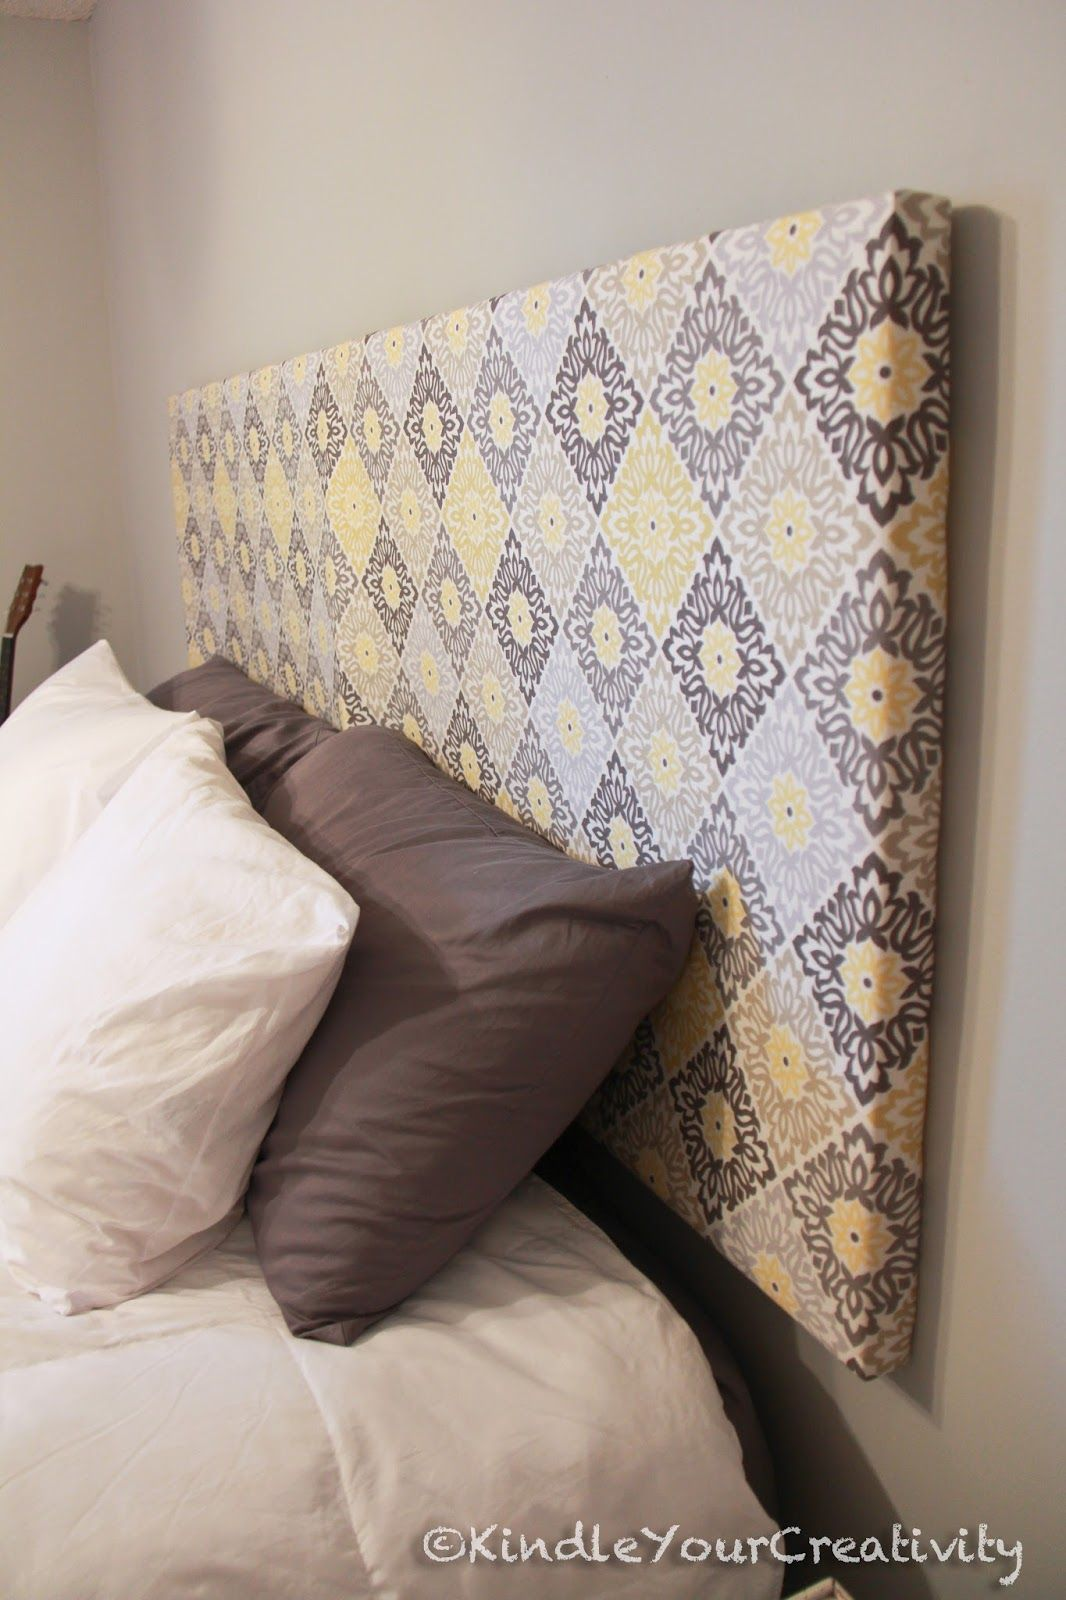 Slaapkamer Fabric Headboard That S Not Connected To The Bed It S Light Weight No